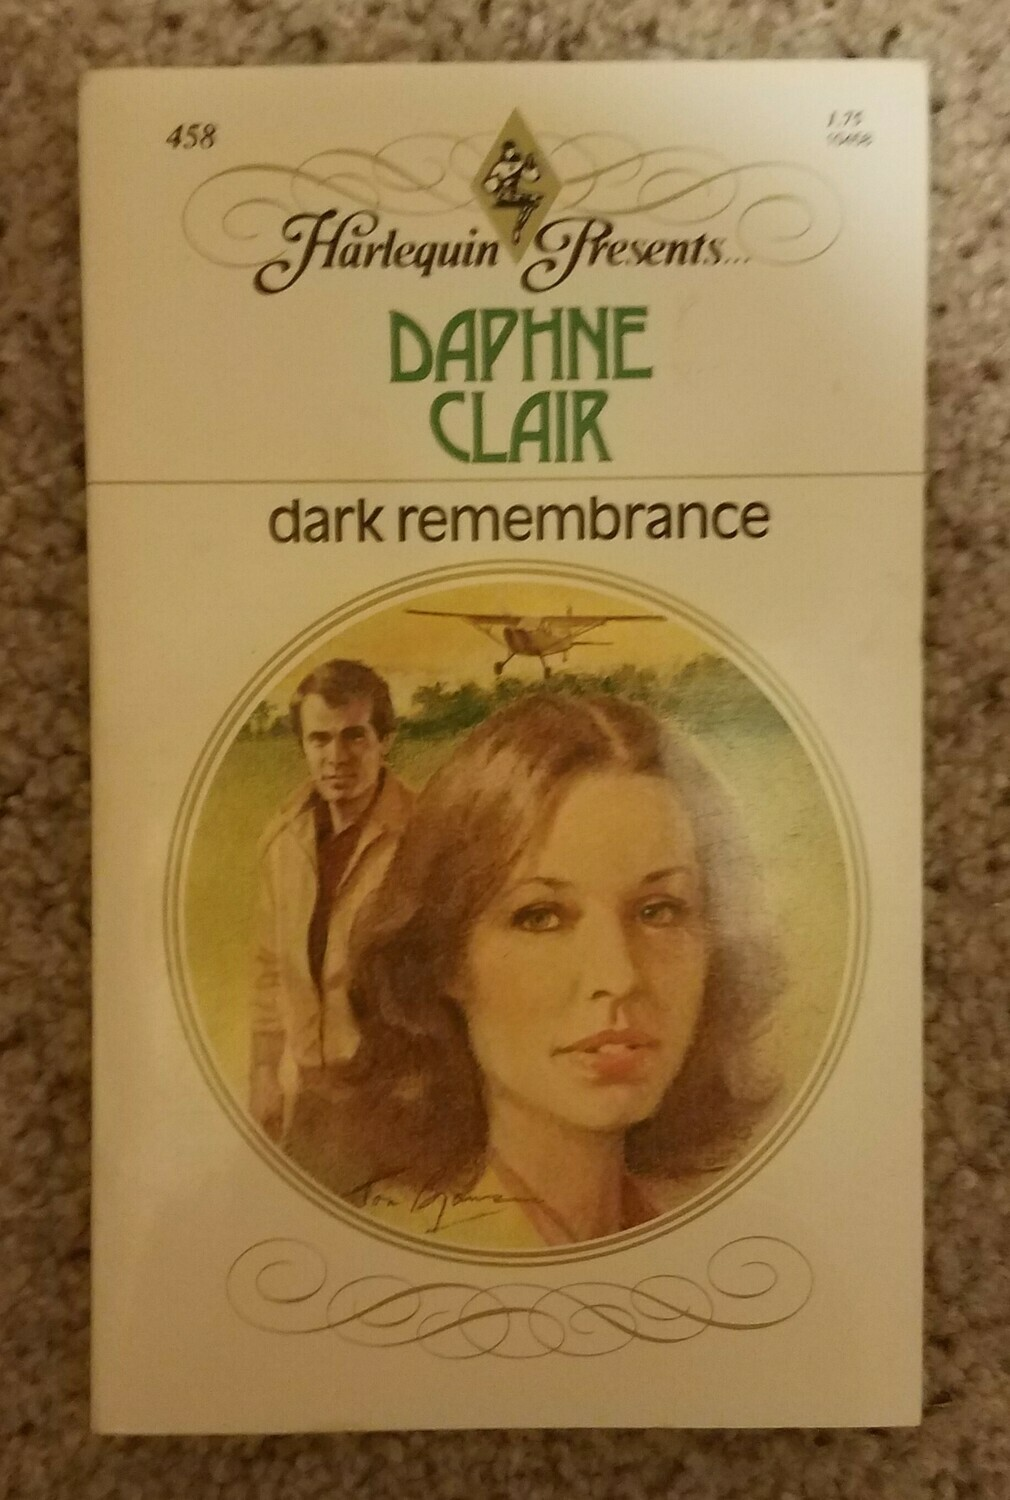 Dark Remembrance by Daphne Clair